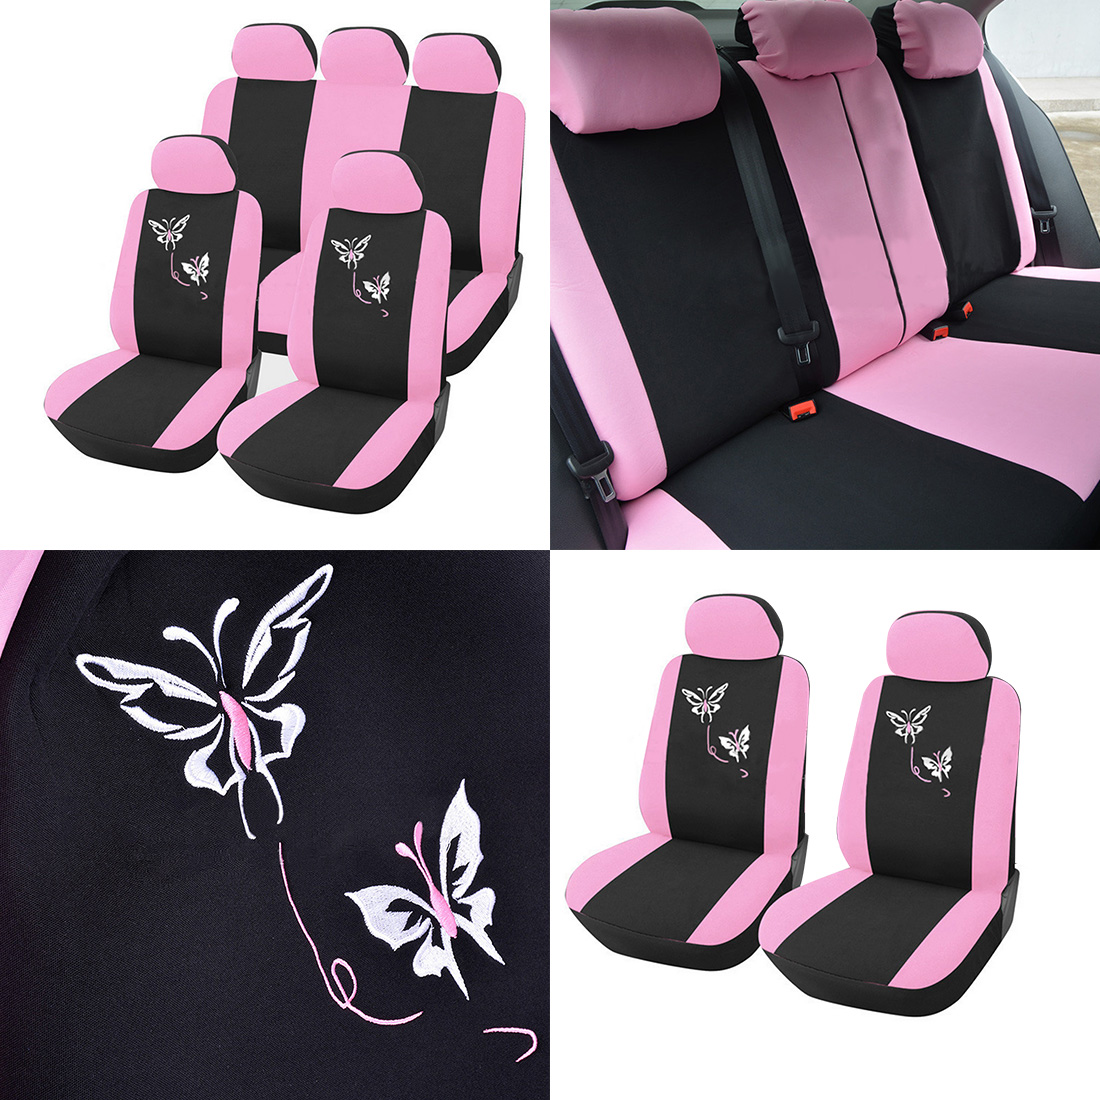 Dewtreetali decoration pink flower embroidery car seat covers for 1 x bag hook accessories mightylinksfo